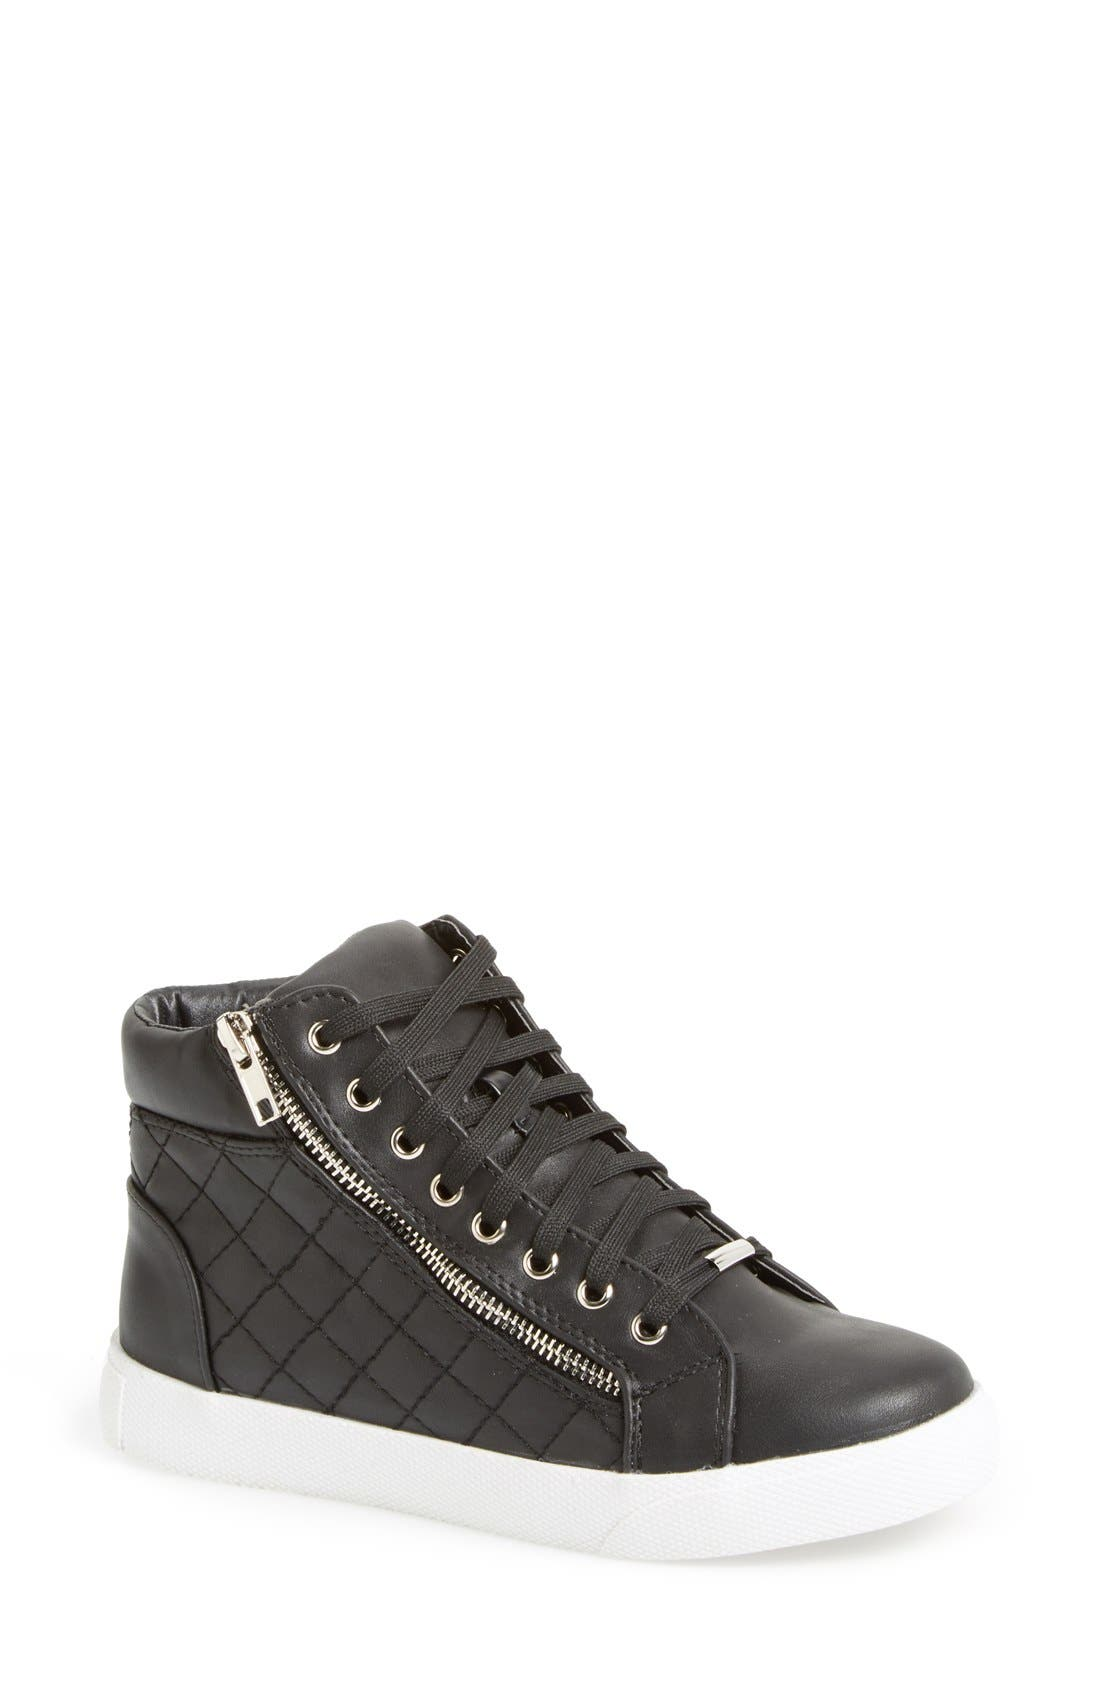 Main Image - Steve Madden 'Decaf' Quilted High Top Sneaker (Women)